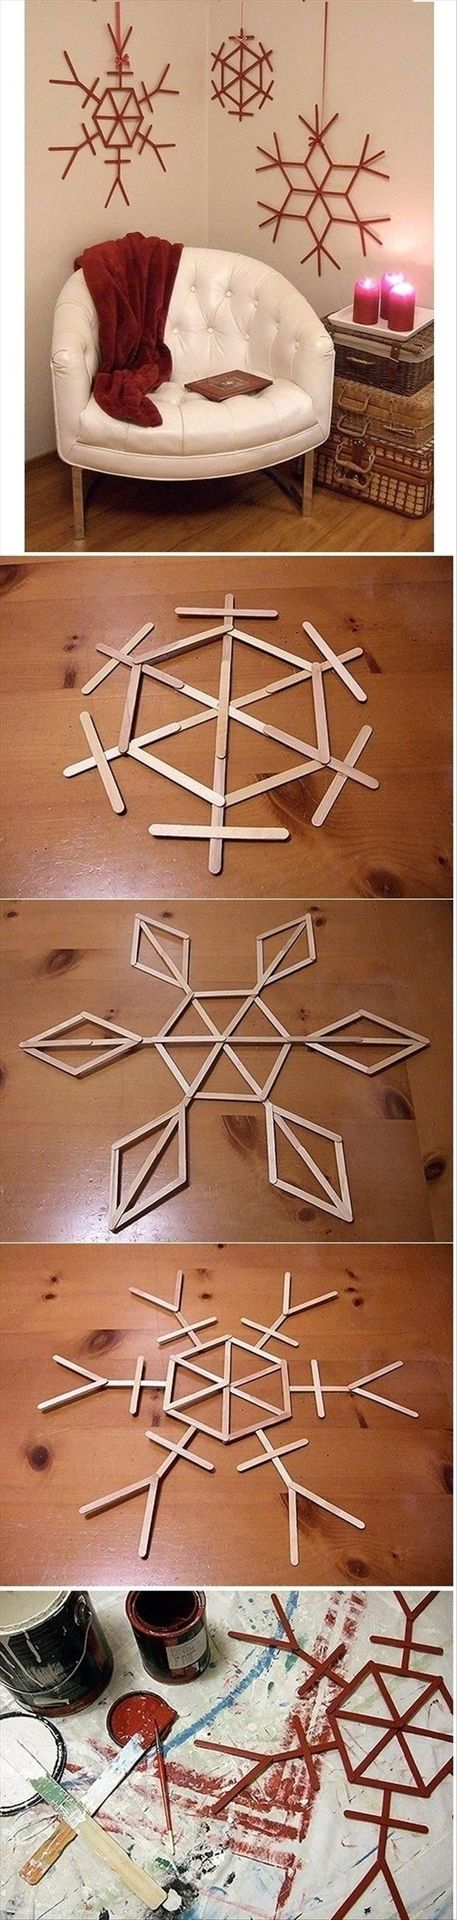 Lovethispic.com — DIY Snowflake Decor